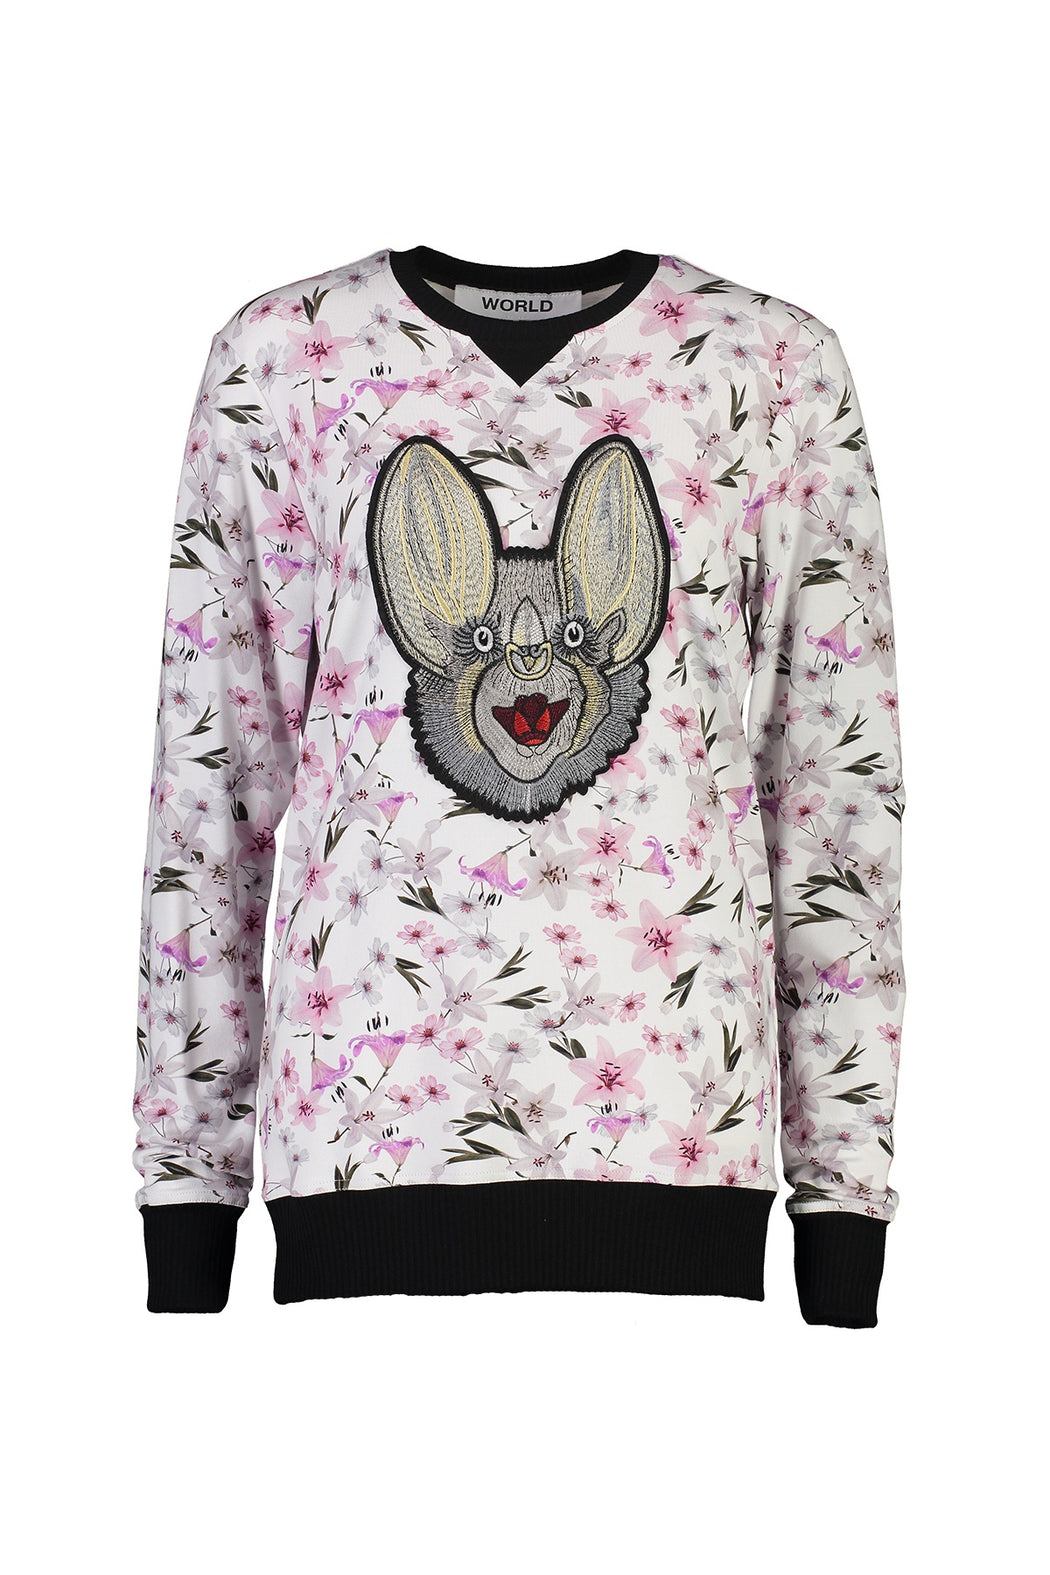 WORLD 4502 The Lover Jumper (Unisex) Floral